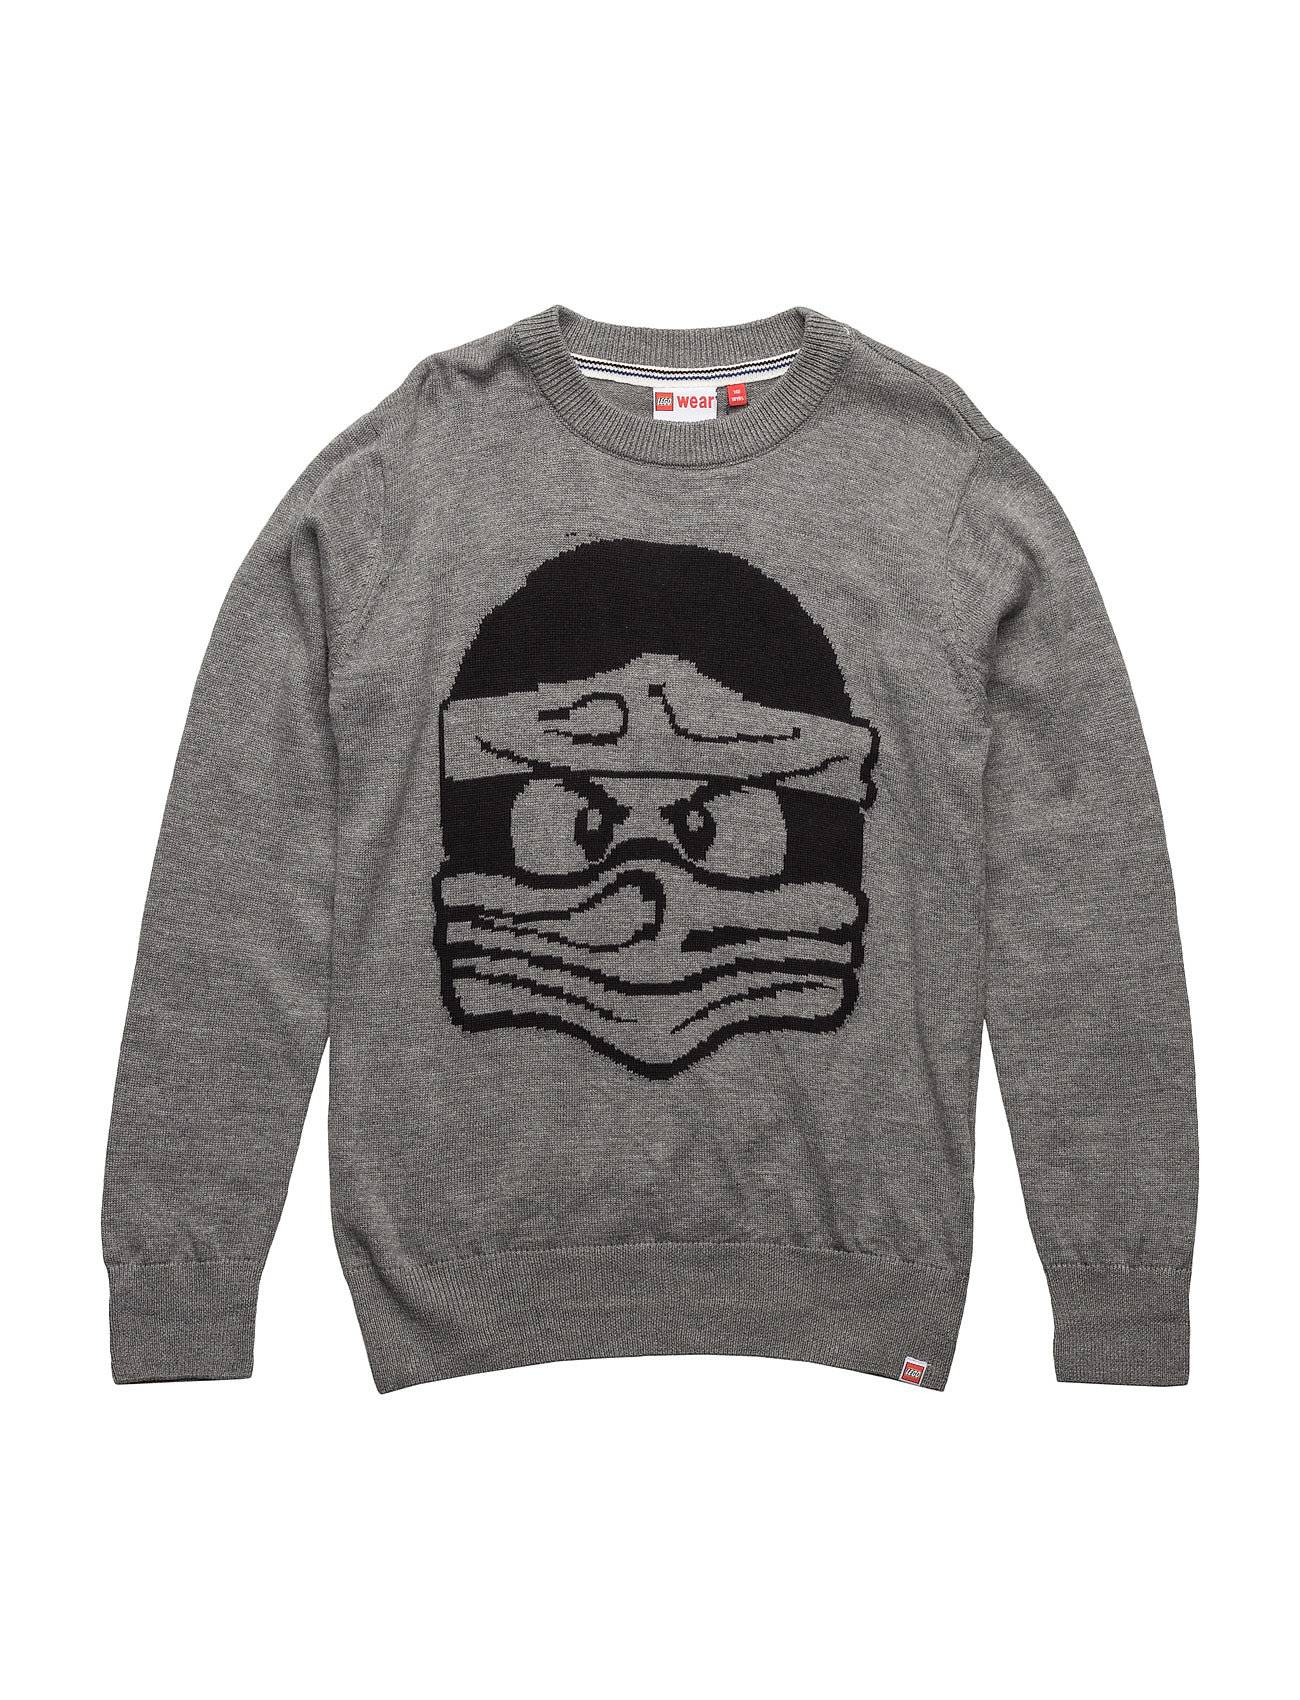 Lego Kyle 701 - Sweater (Knit)